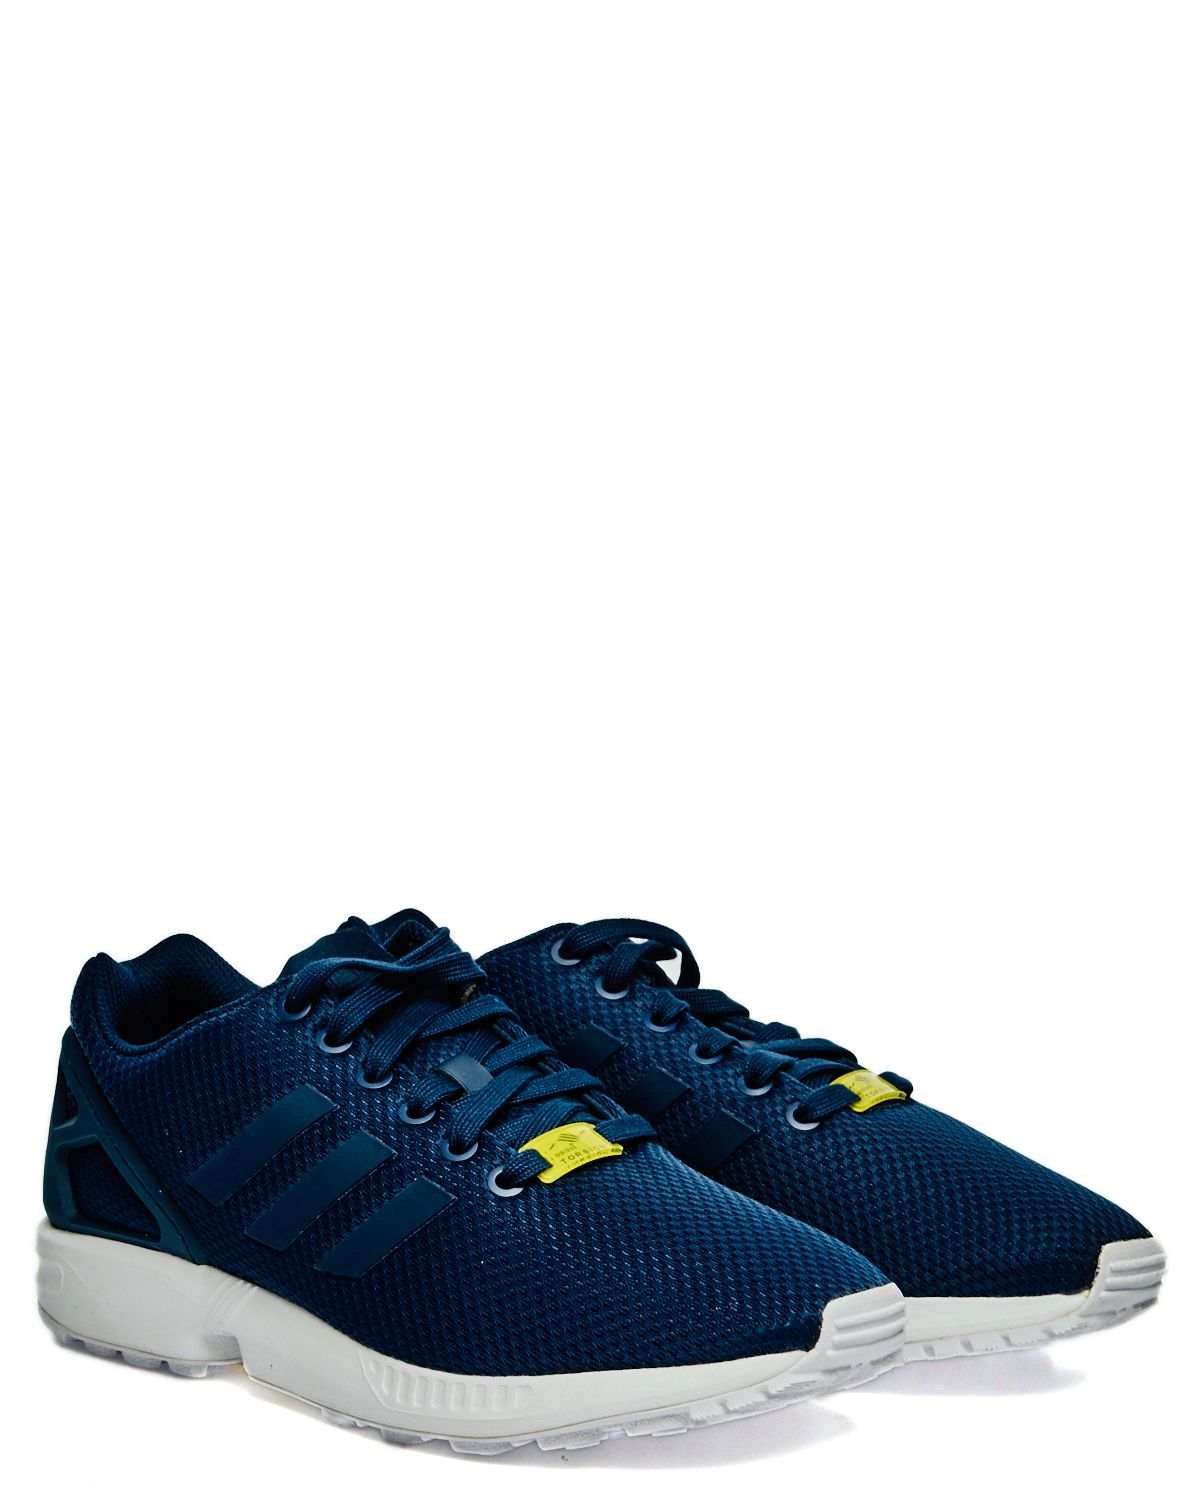 pretty nice 38fd6 58686 Adidas ZX Flux new navy new navy running white sneakers M19841 Sneakers på  Zoovillage